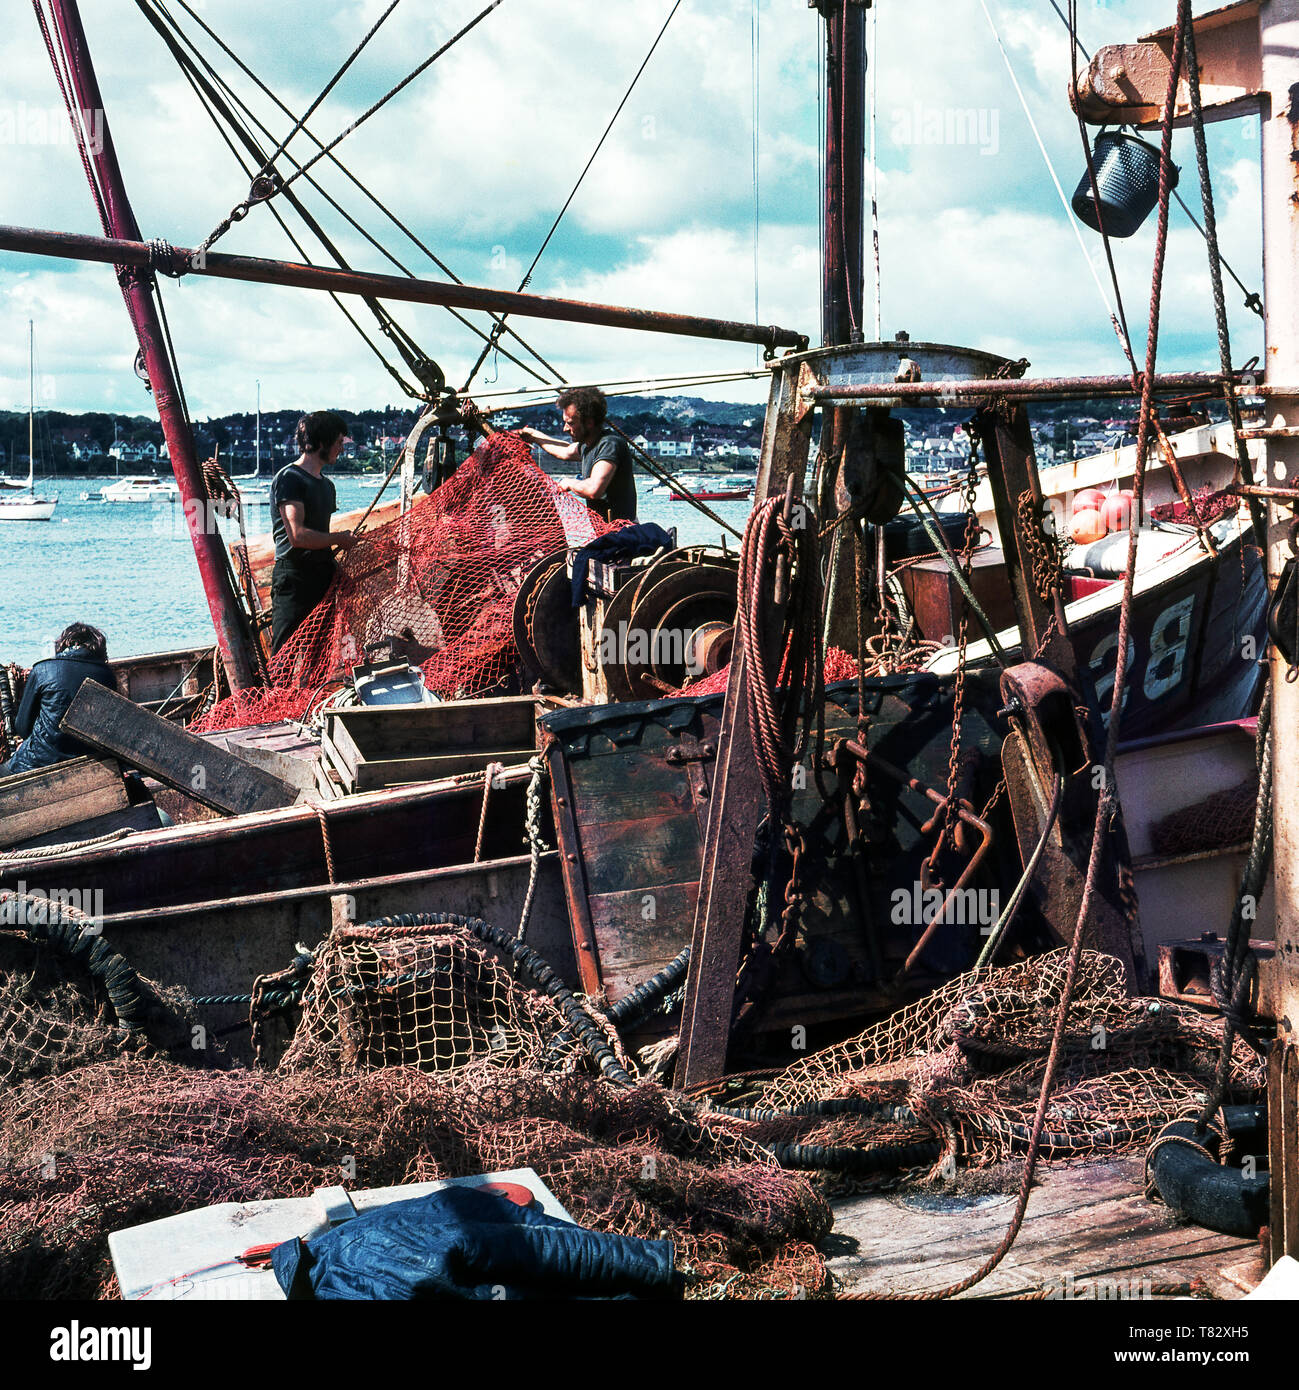 Fishing boat in harbour. Men repairing the net .Conway in North Wales.Great Britain. - Stock Image